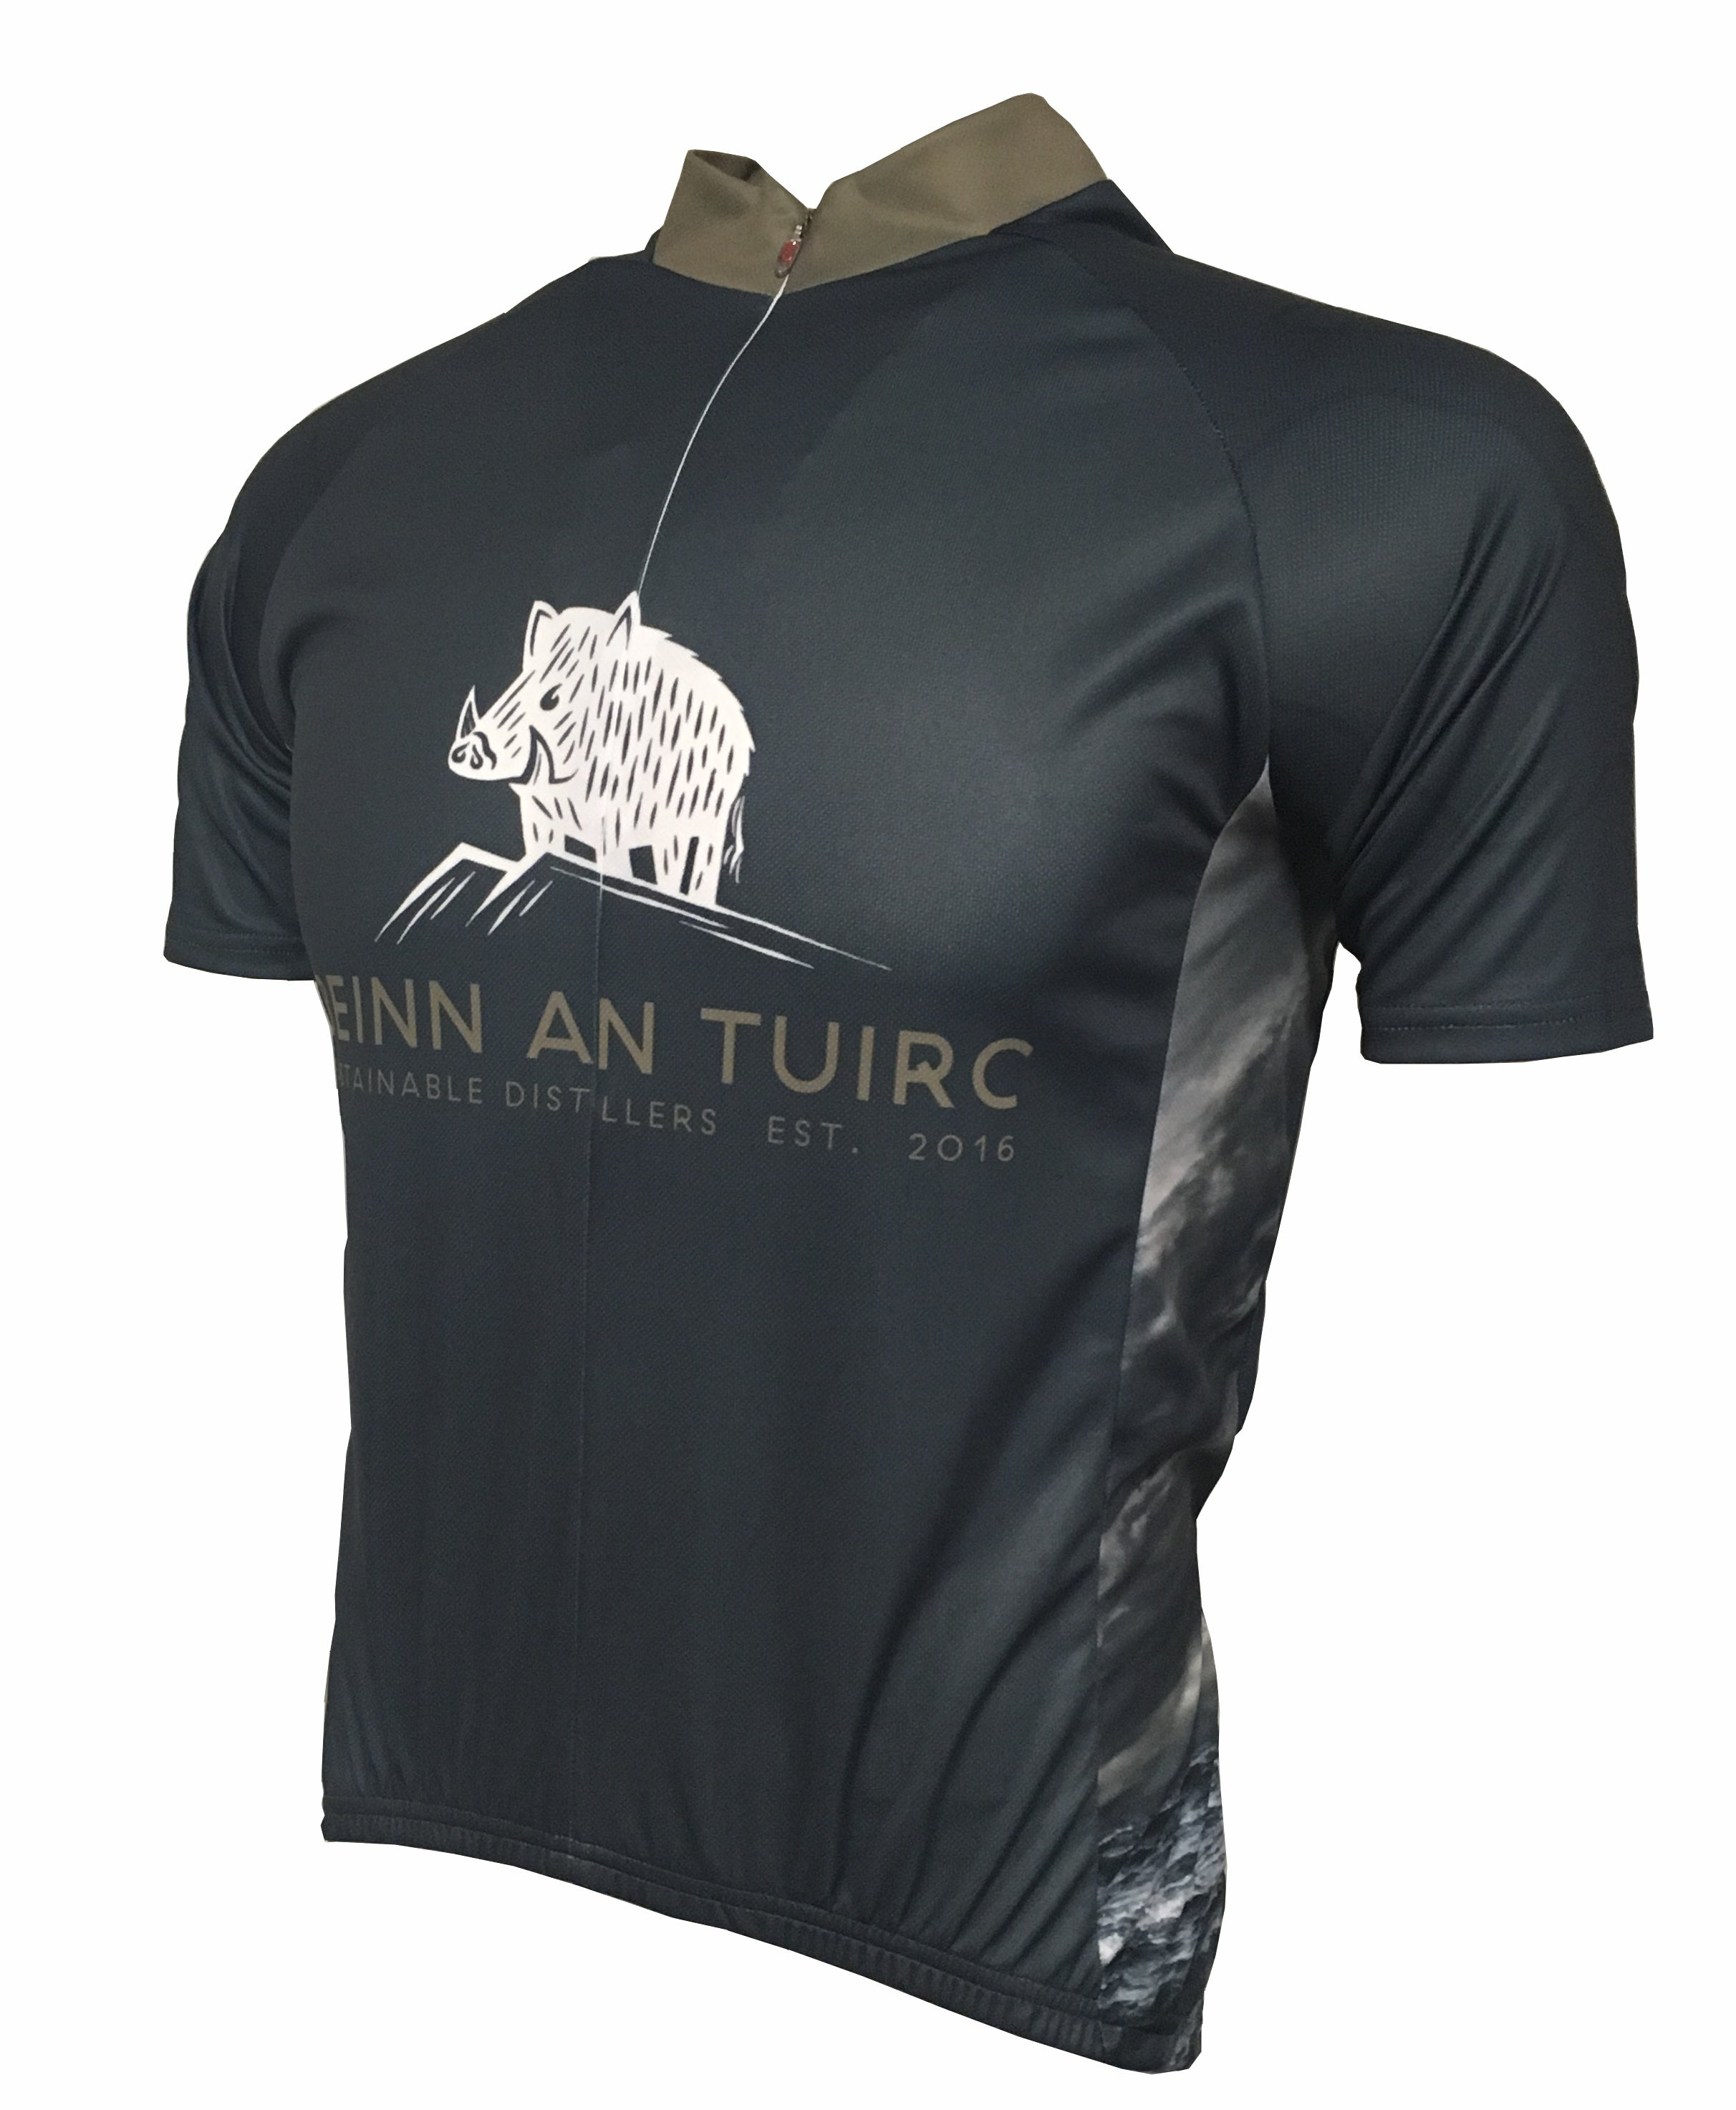 Kintyre Gin Road Cycling Jersey